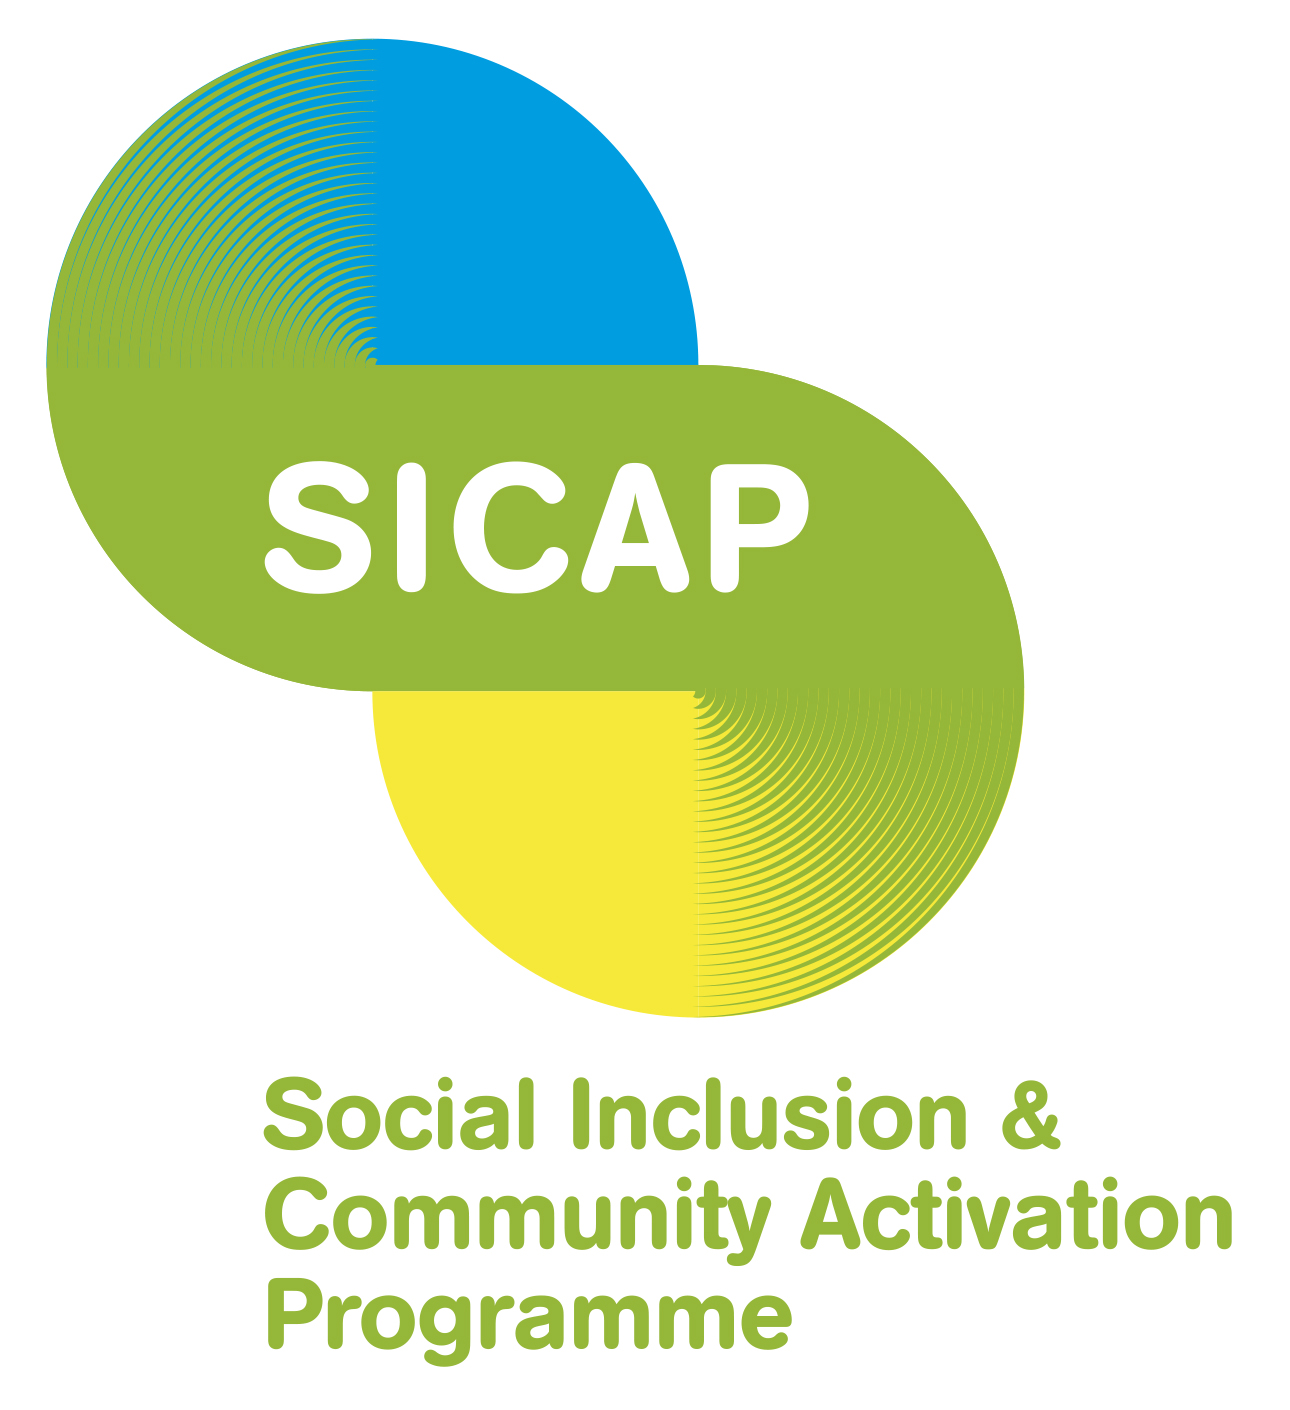 https://empower.ie/wp-content/uploads/2017/09/SICAP_hi-res_logo.jpg